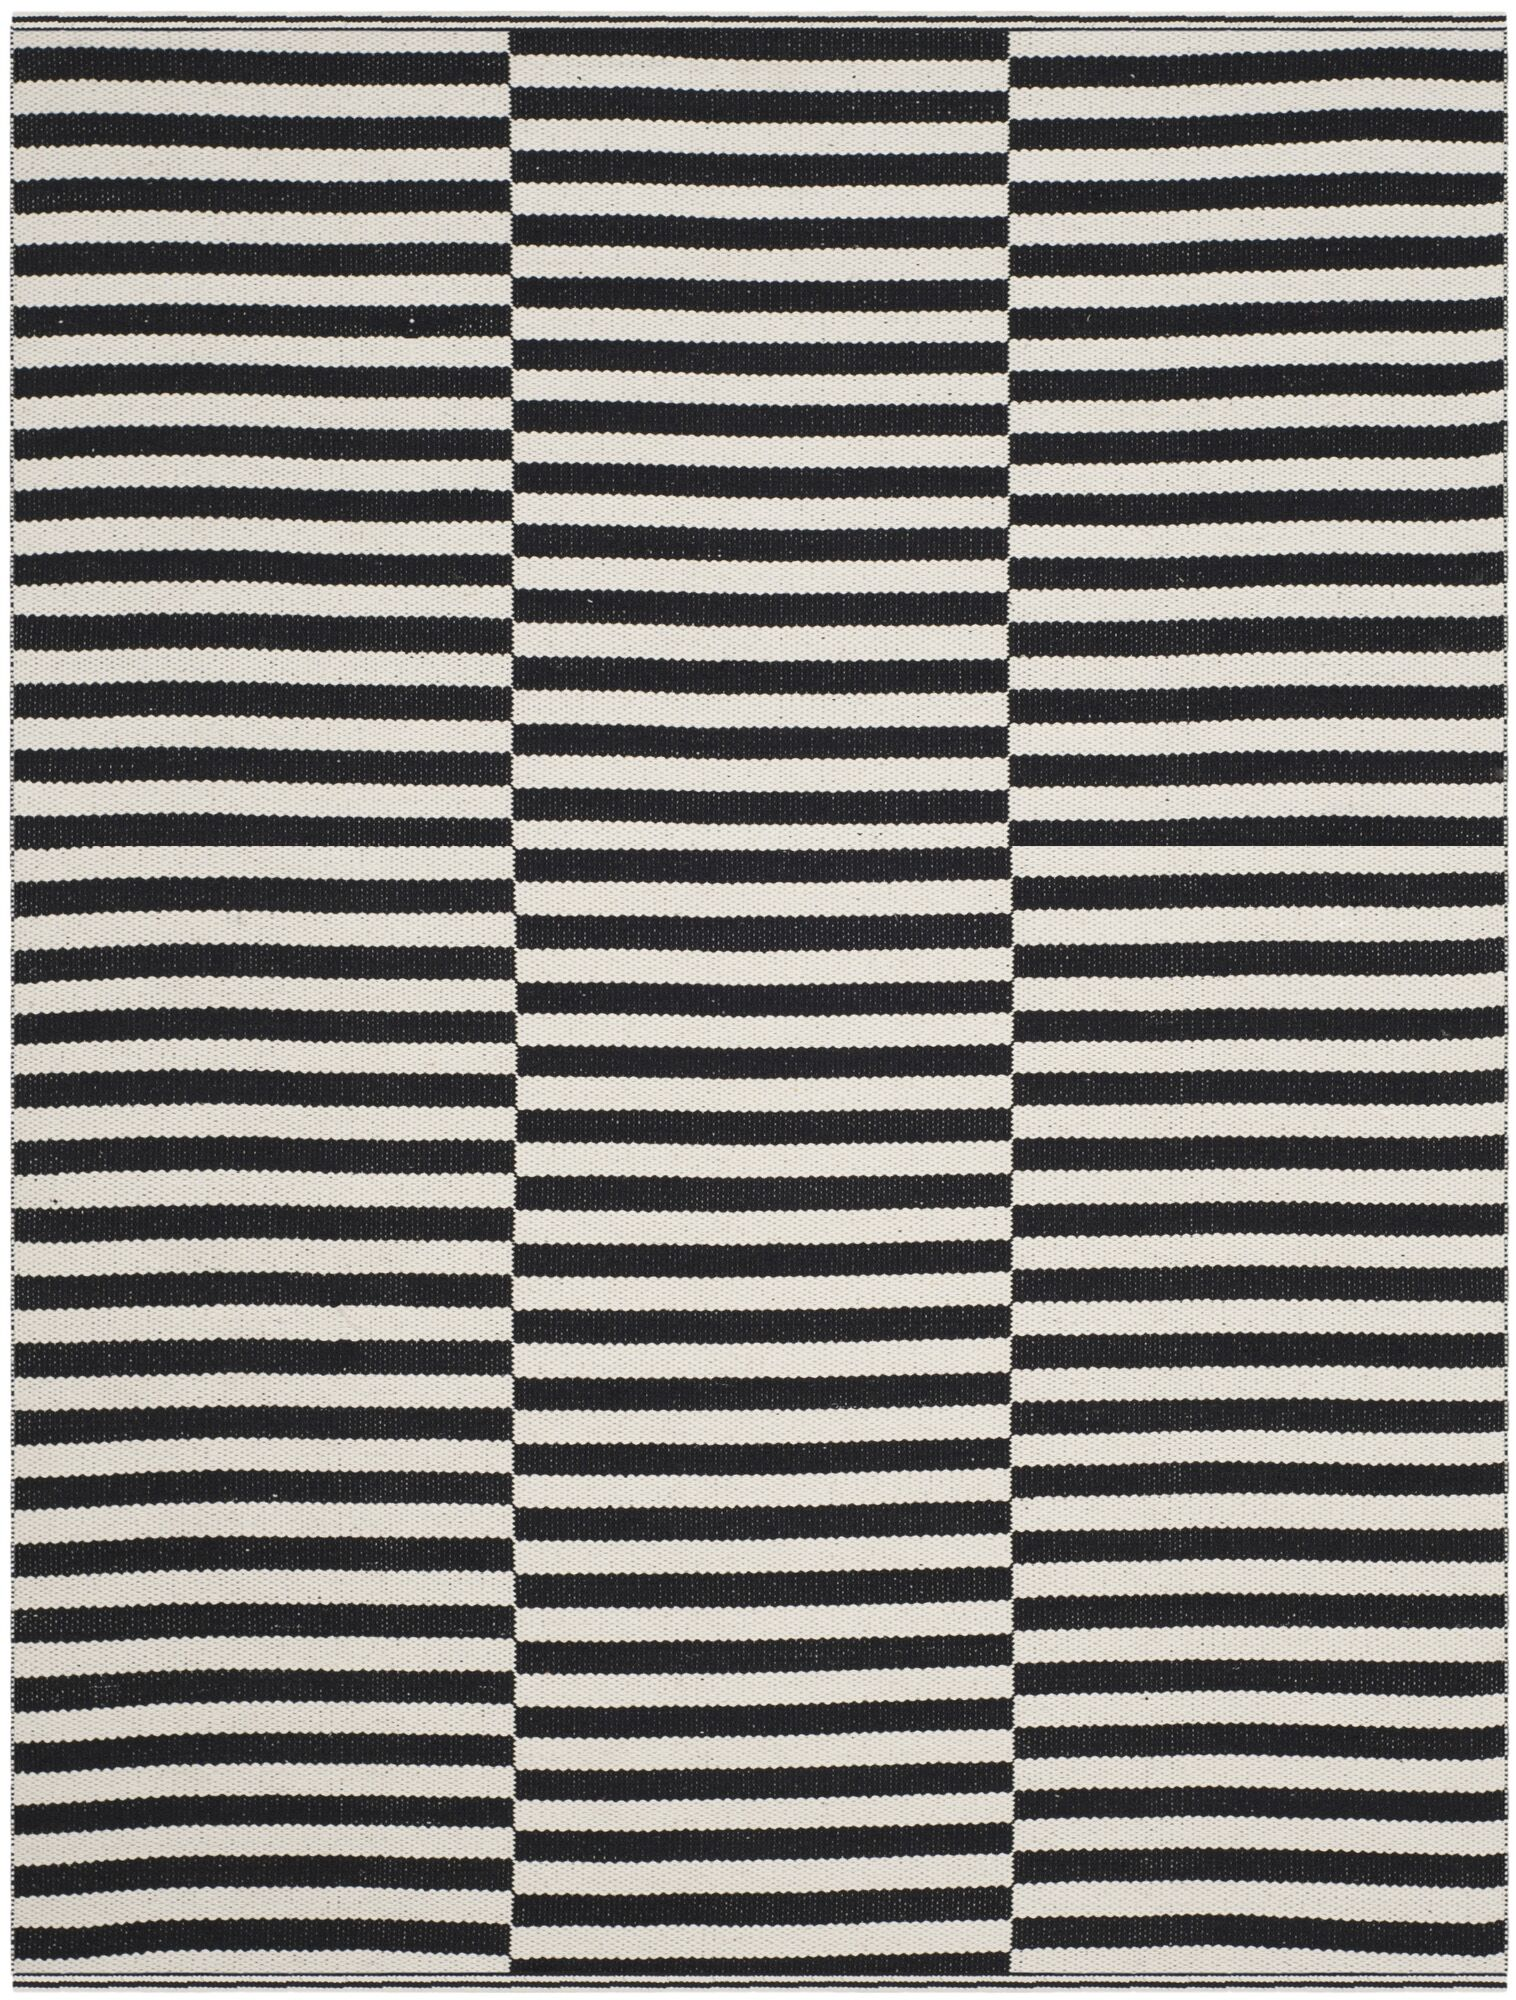 Orwell Hand-Woven Cotton Ivory/Black Area Rug Rug Size: 4' x 6'